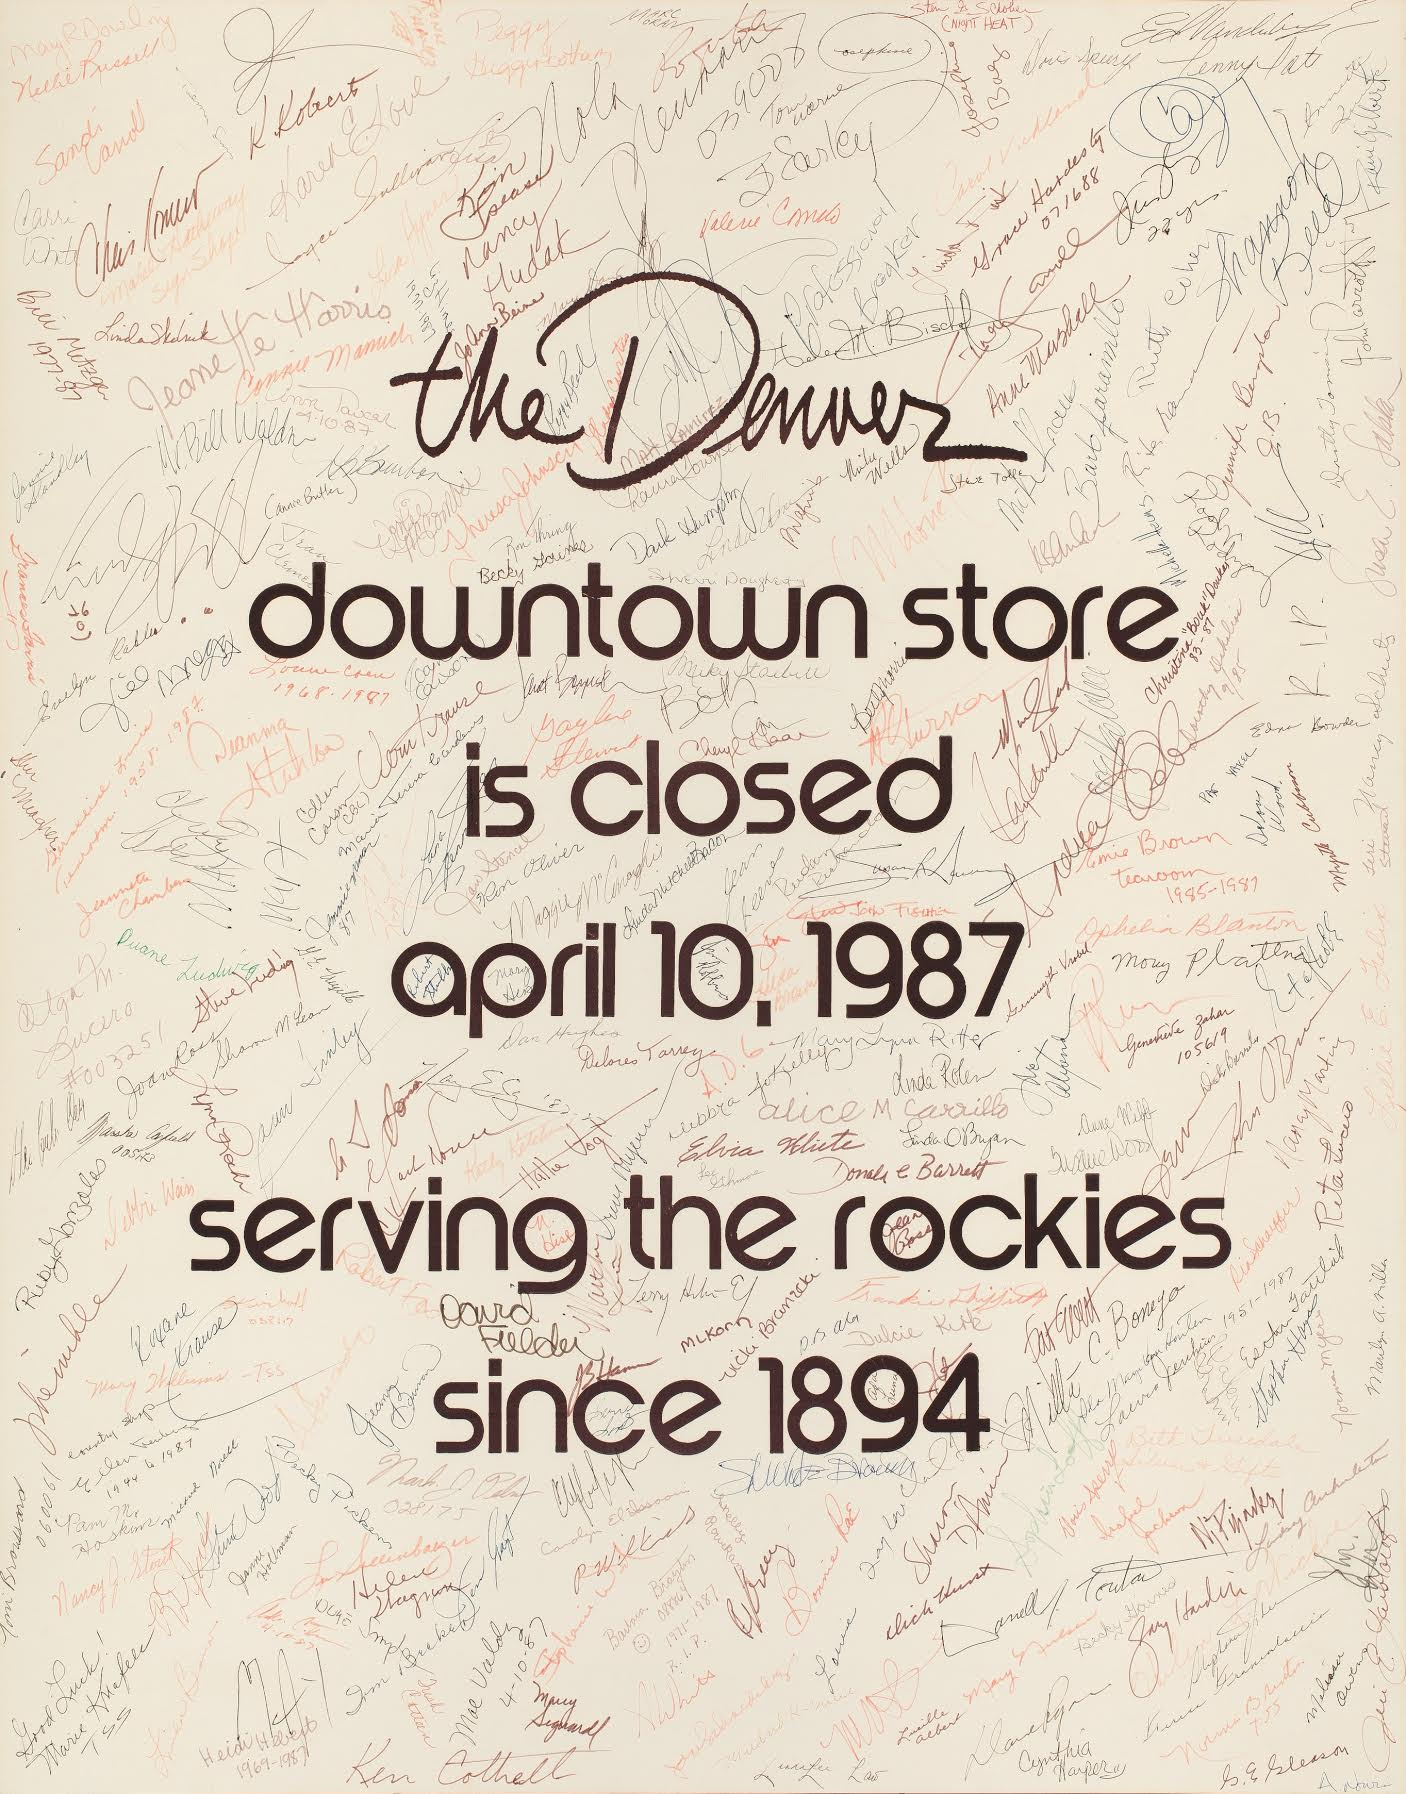 Photo: Denver Dry Goods Store Closes 1980s